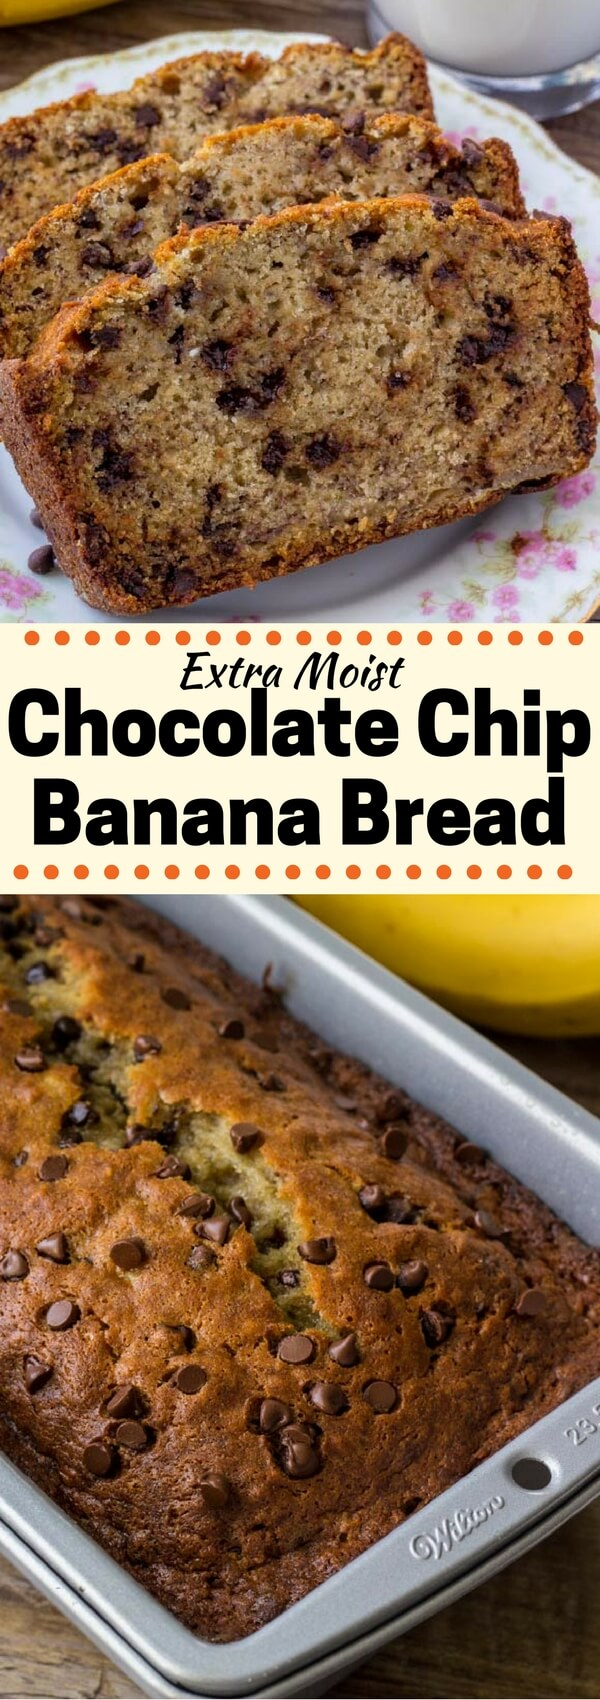 This Chocolate Chip Banana Bread is the best banana bread recipe around. It's moist, super flavorful, has a perfectly domed top, and filled with chocolate chips.#bananabread #bananachocolatechip #bananas #recipes #quickbreads #chocolatechipbananabread